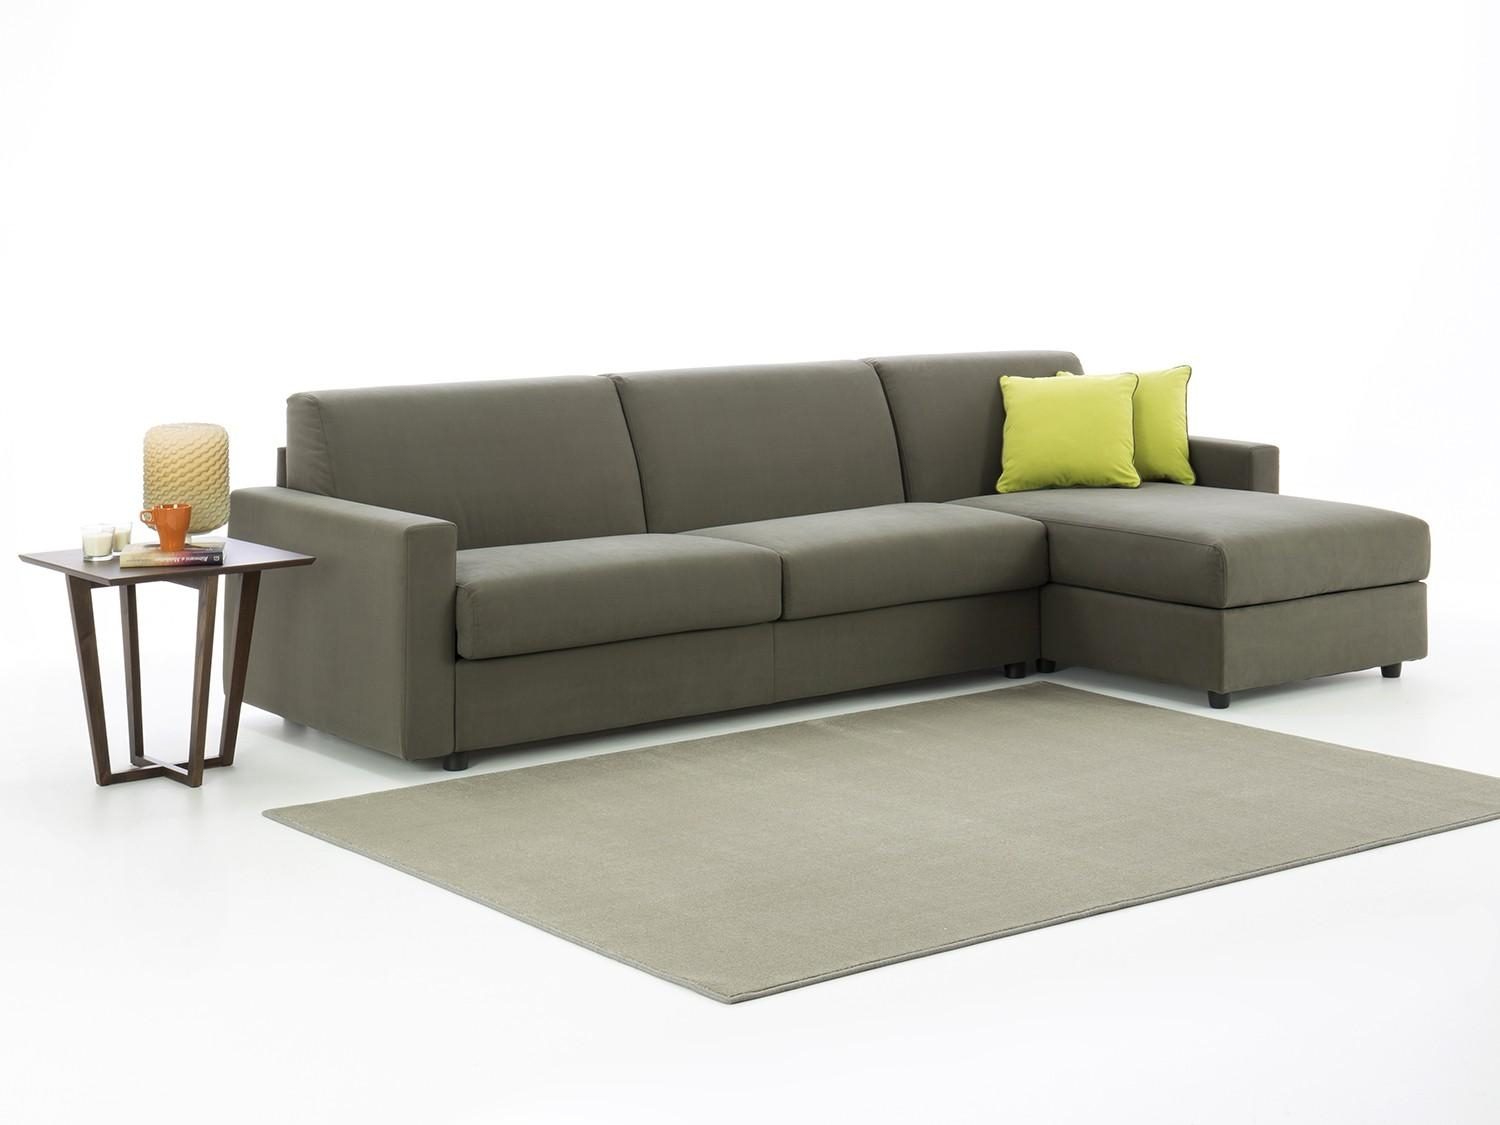 Sofa Bed Chaise With Storage | Tehranmix Decoration Intended For Sofa Beds With Storage Chaise (View 10 of 20)